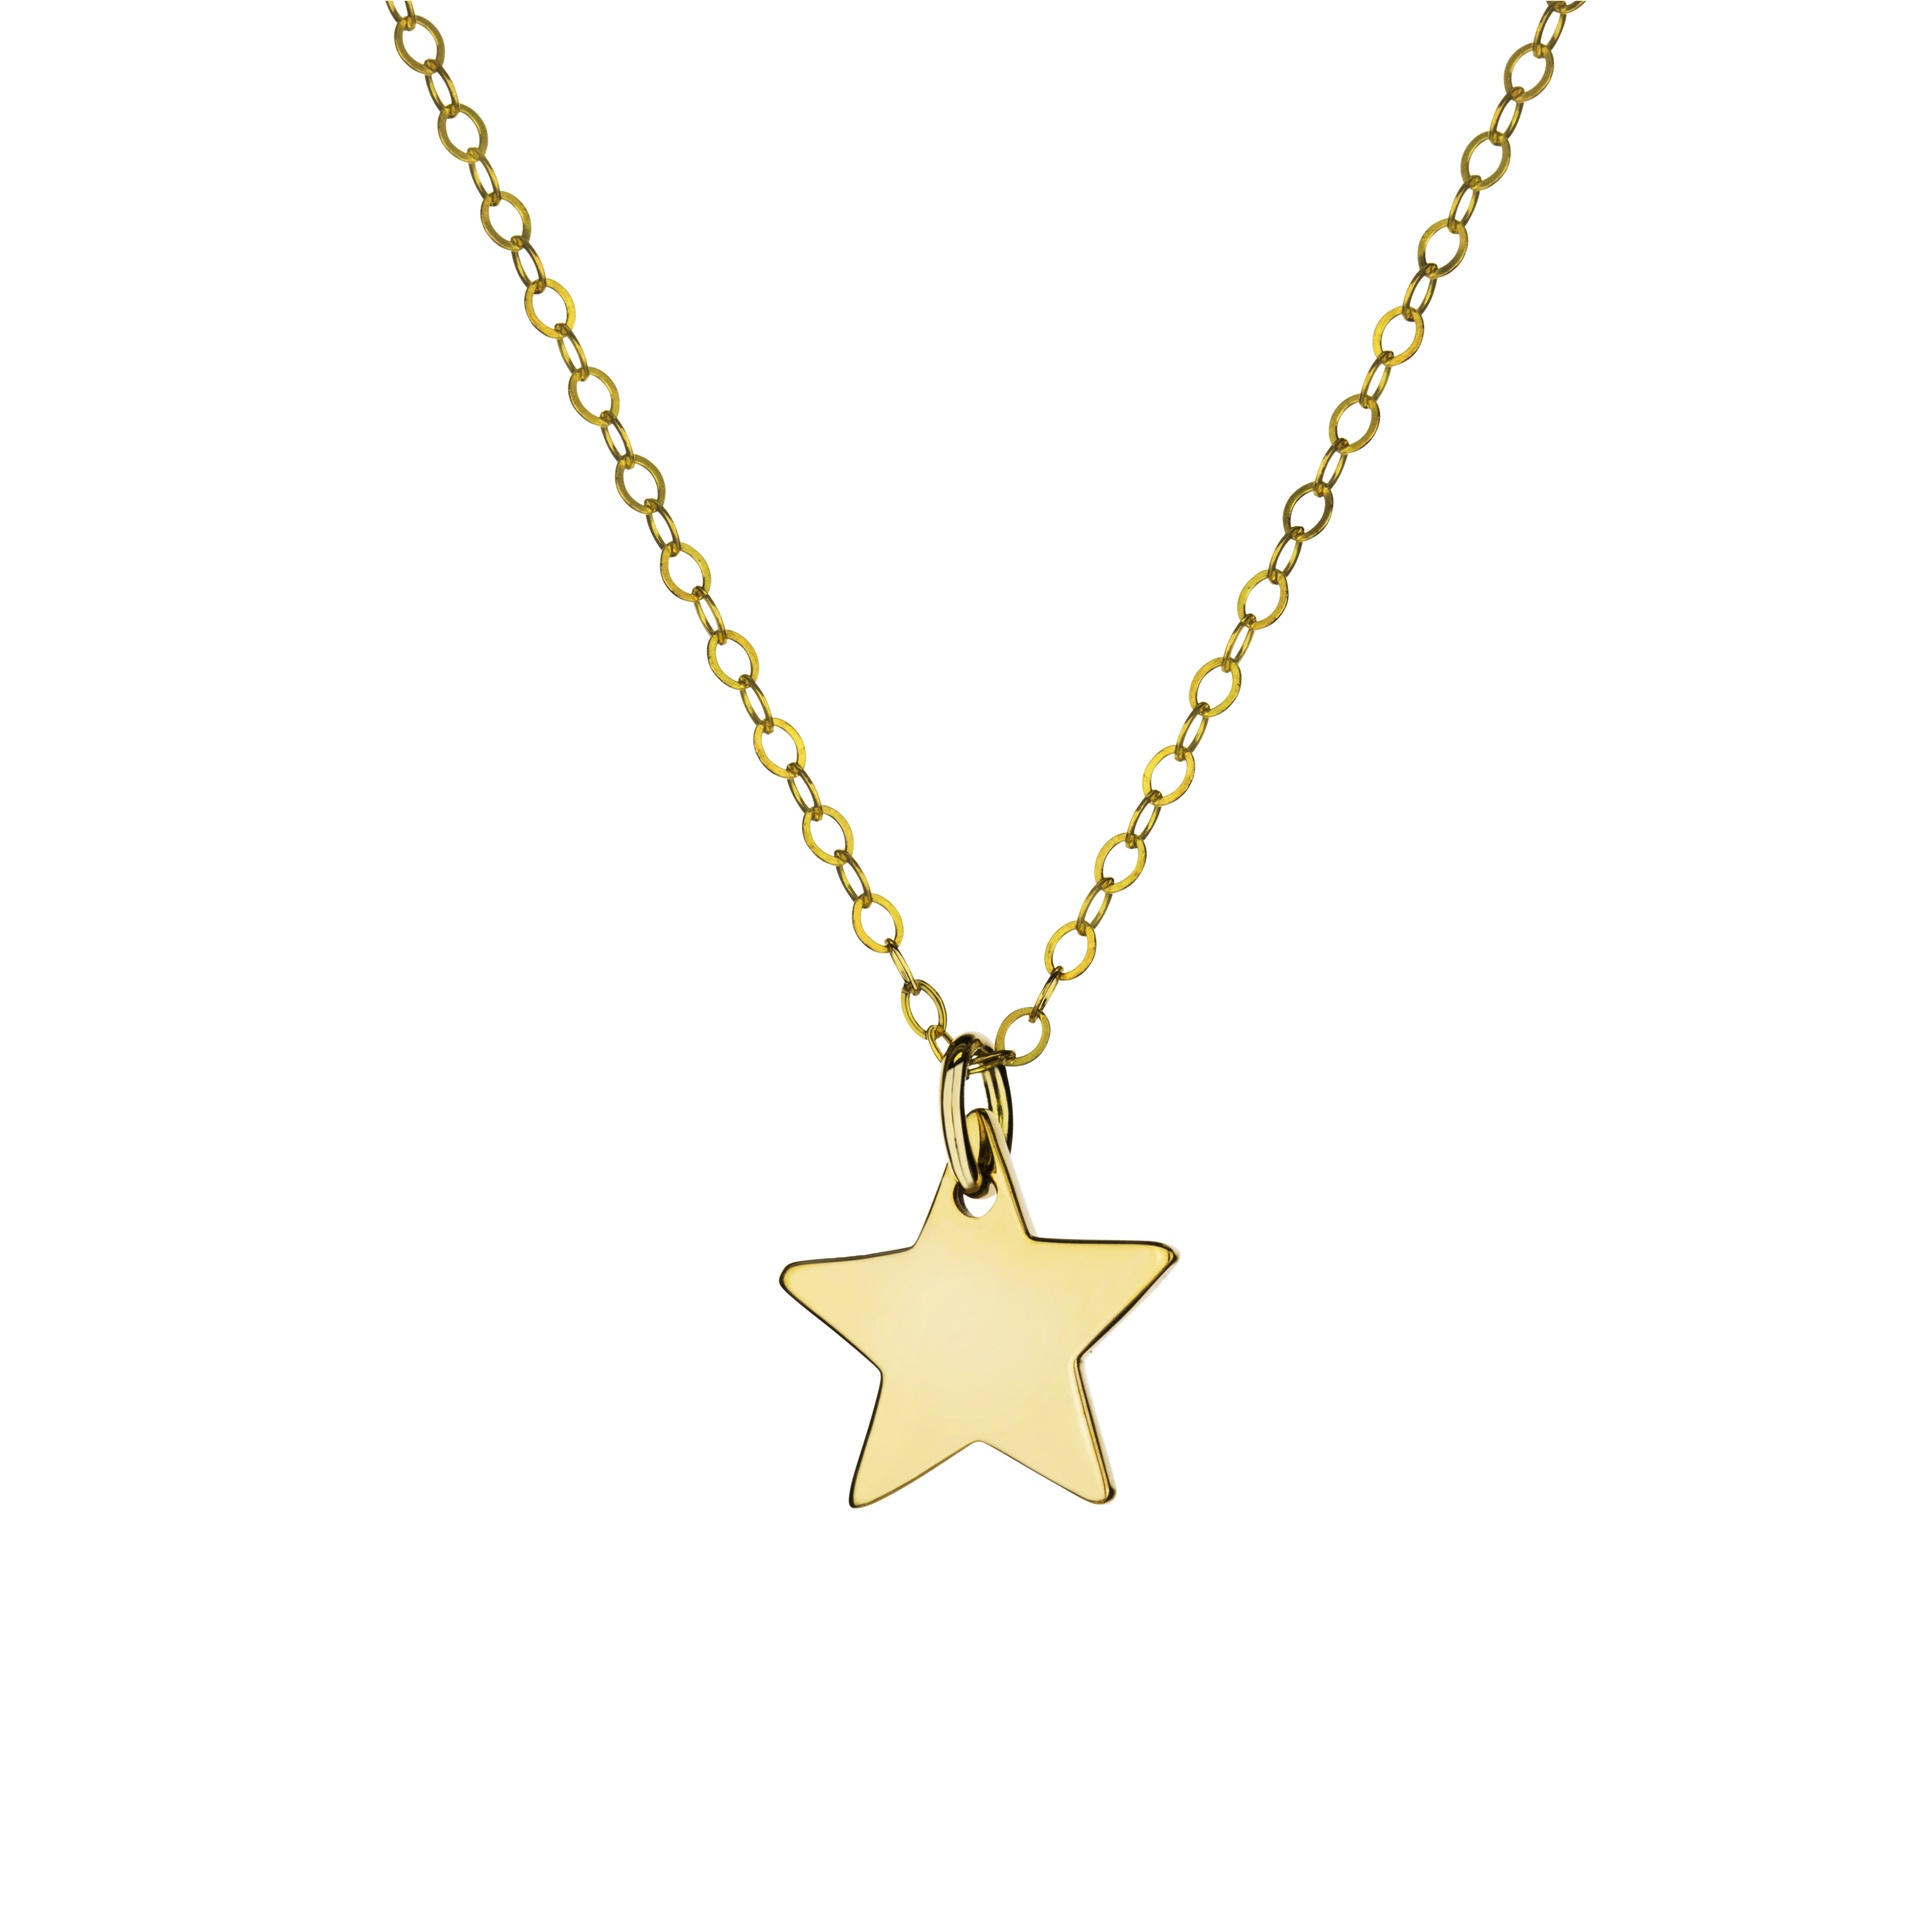 ba1378985d9e32 Tiny Gold Star Charm Necklace - # Collaborate Store